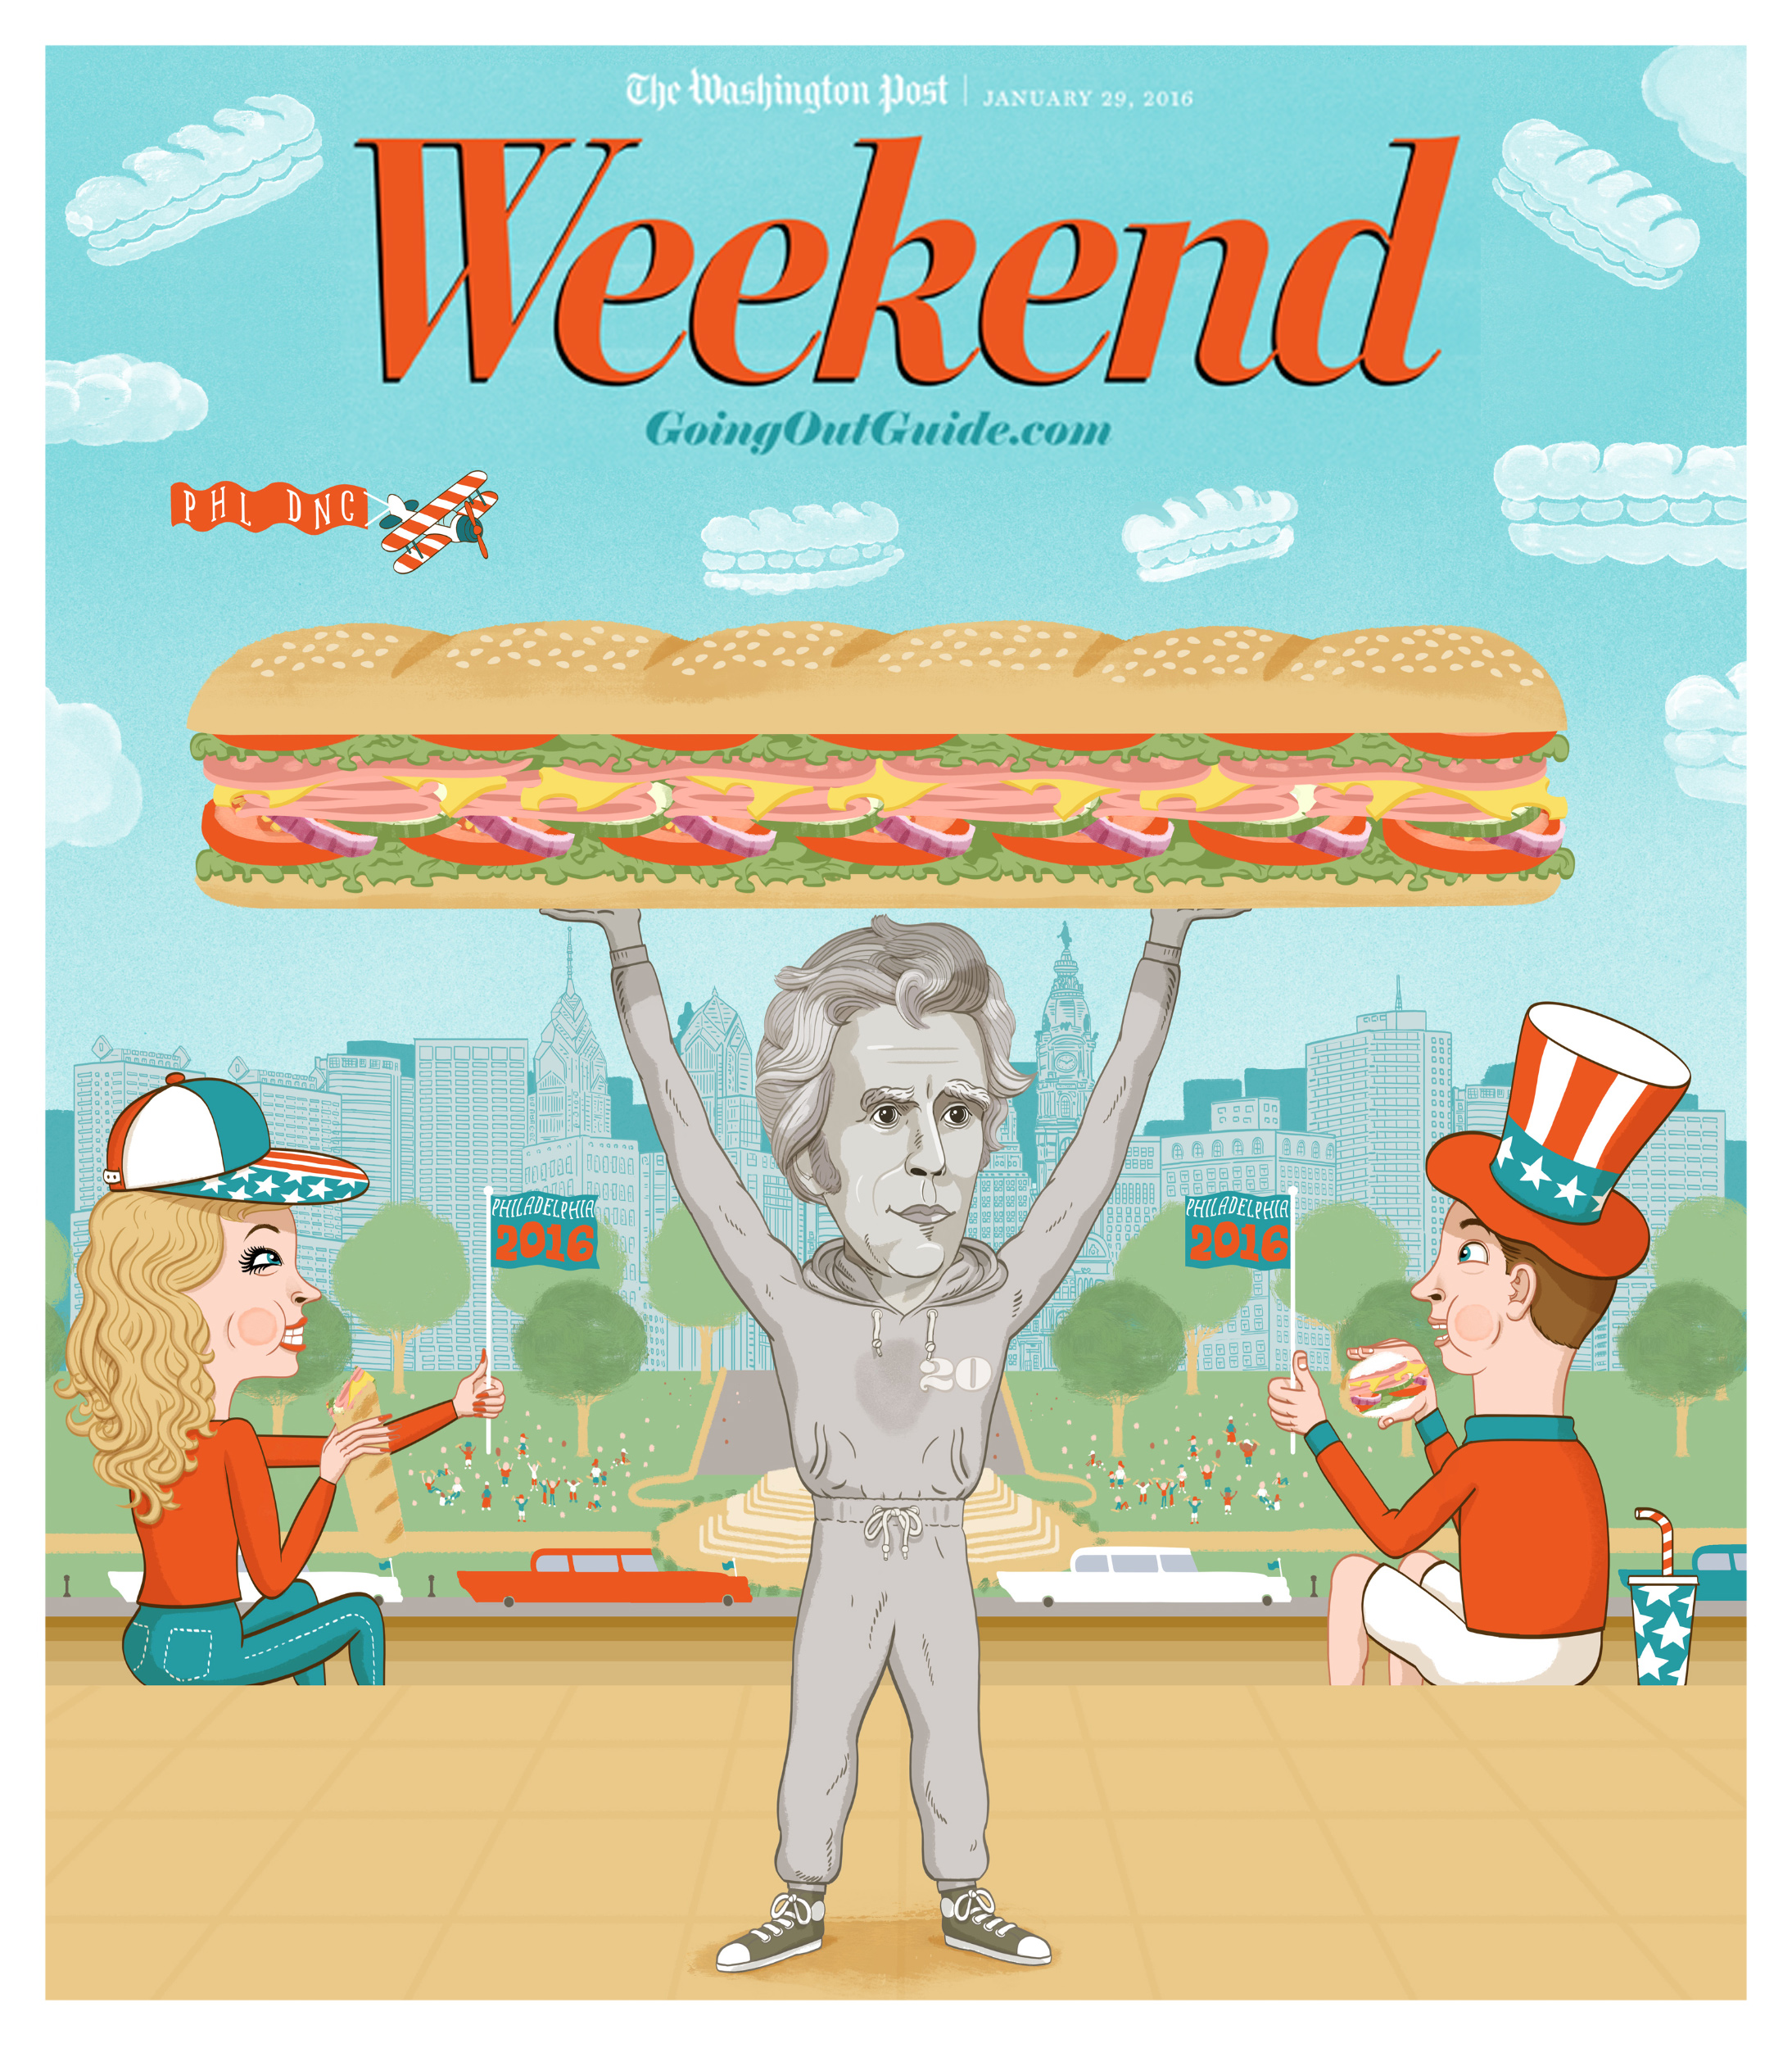 - For the Washington Posts' Going Out Guide, the 20$ Diner section visits the National Democratic Convention in Philadelphia to sample the famous Philadelphia Hoagie. Andrew Jackson, as featured on the 20$ bill is holding aloft his hoagie conquest on those Philly steps made famous by Rocky